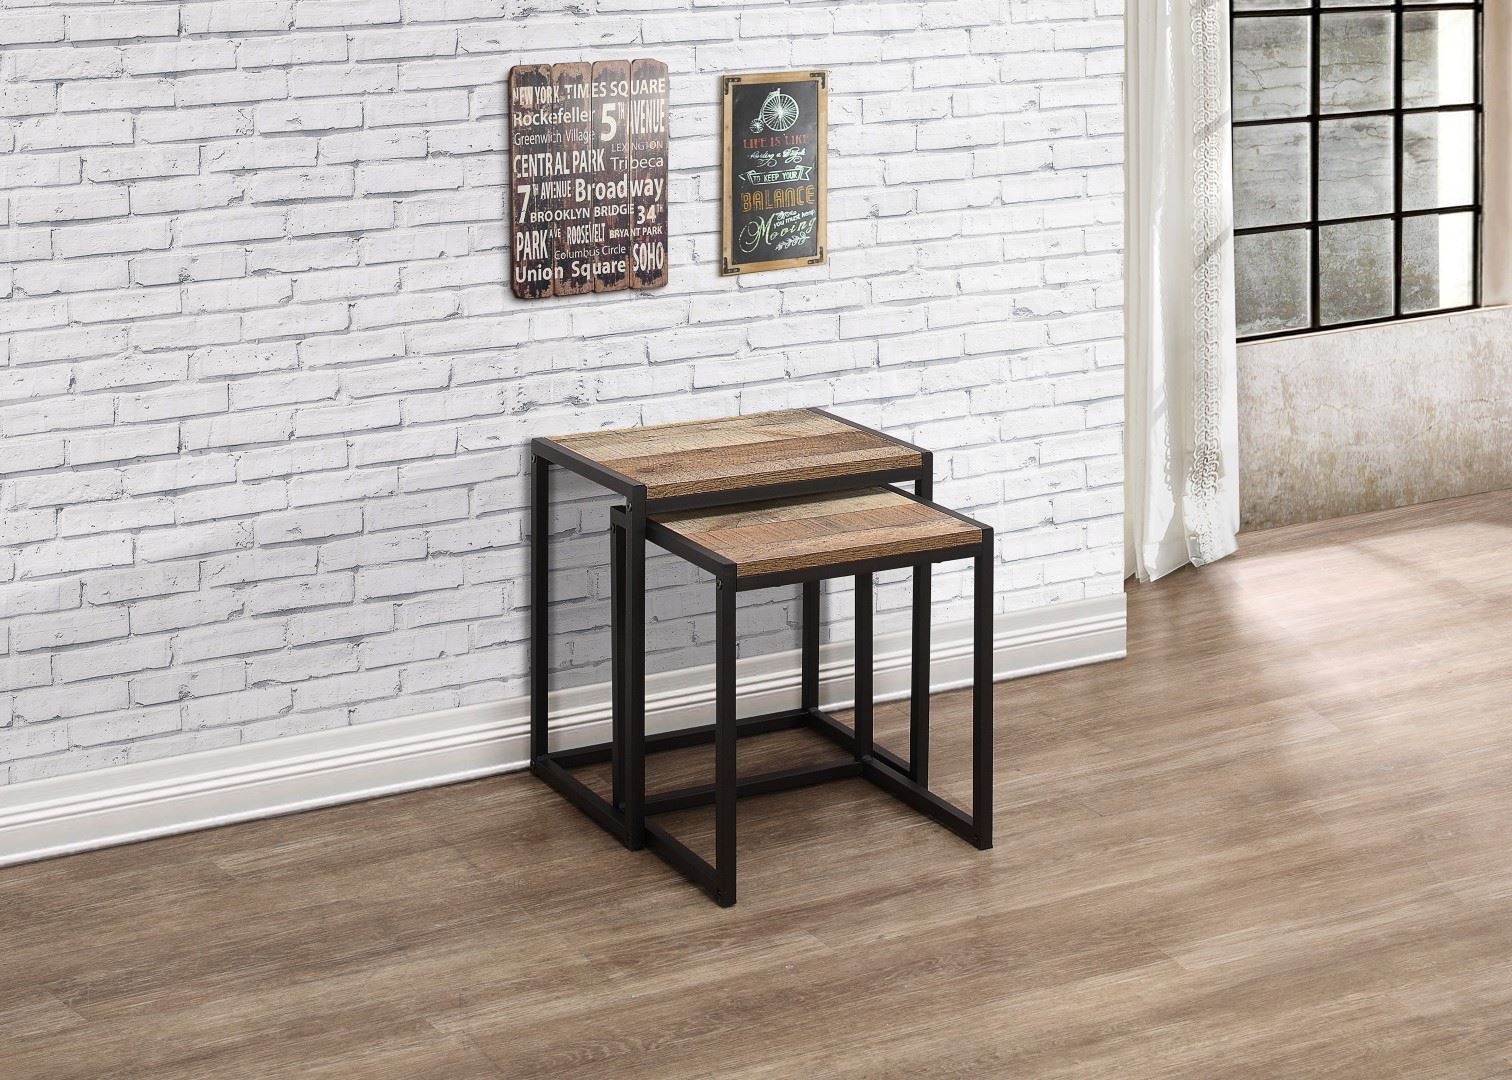 Birlea Urban Industrial Chic Nest of 2 Tables Rectangular Wood Black Metal